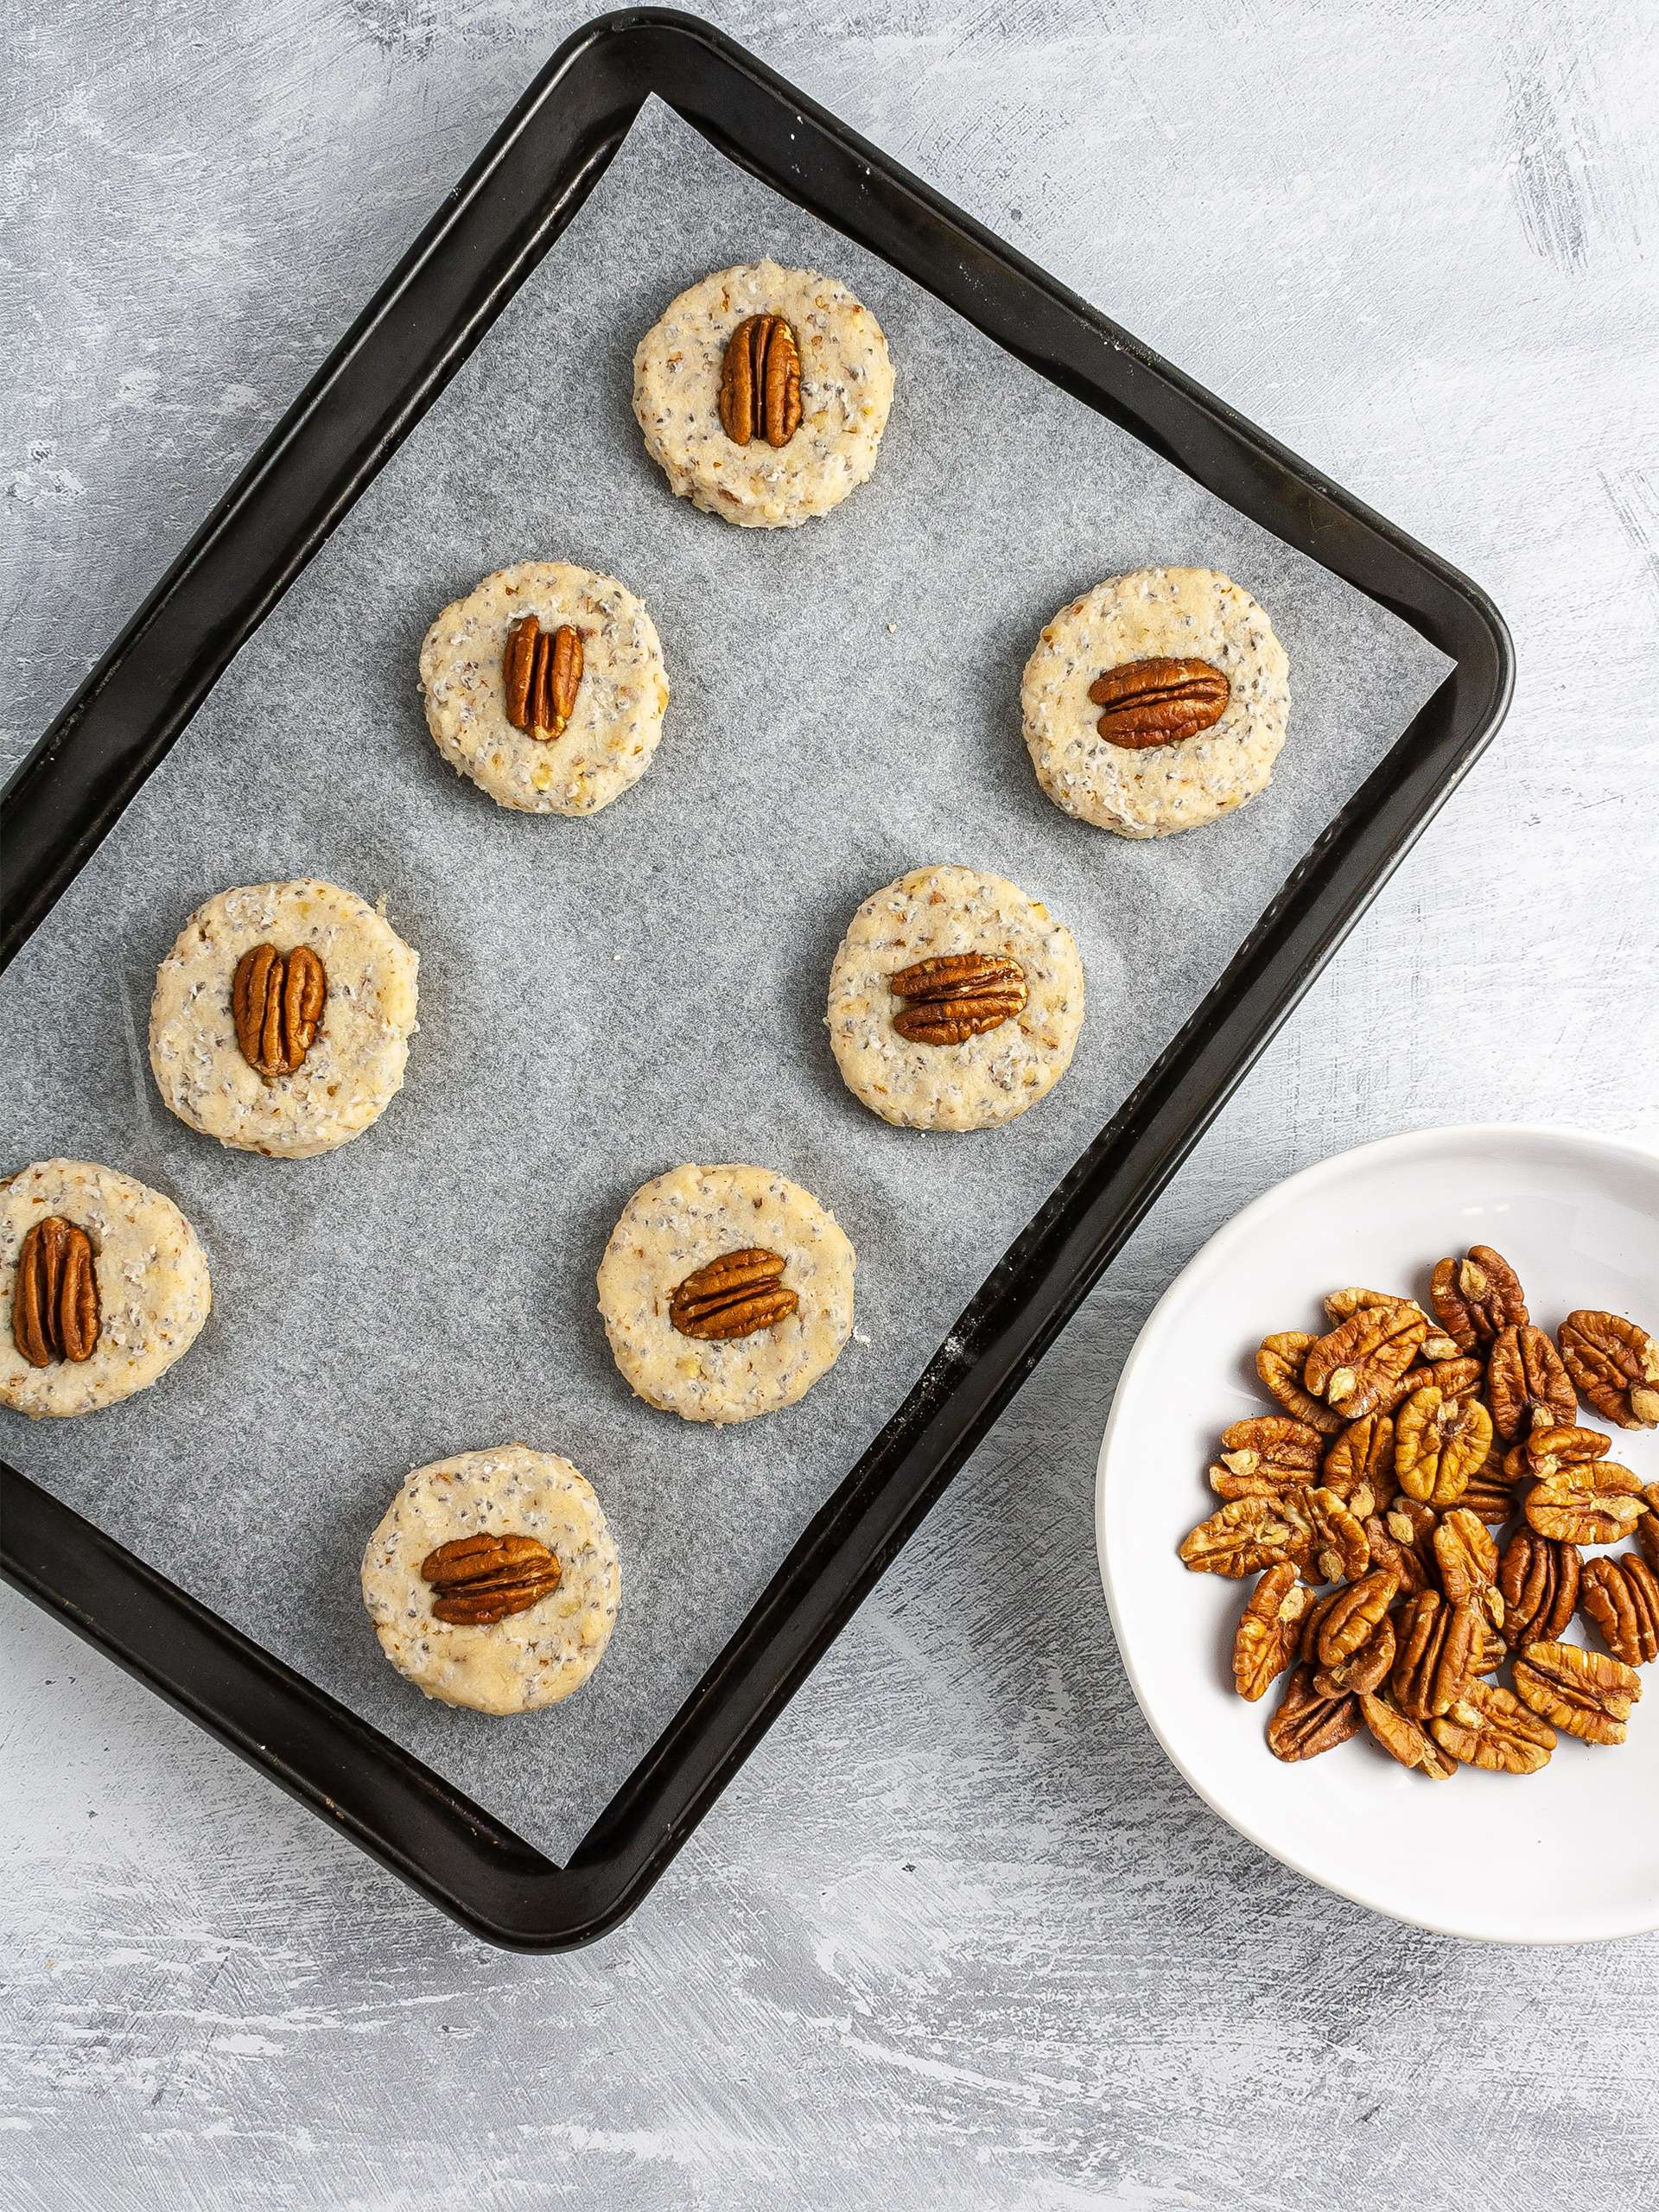 Shaped sandies topped with pecan nuts